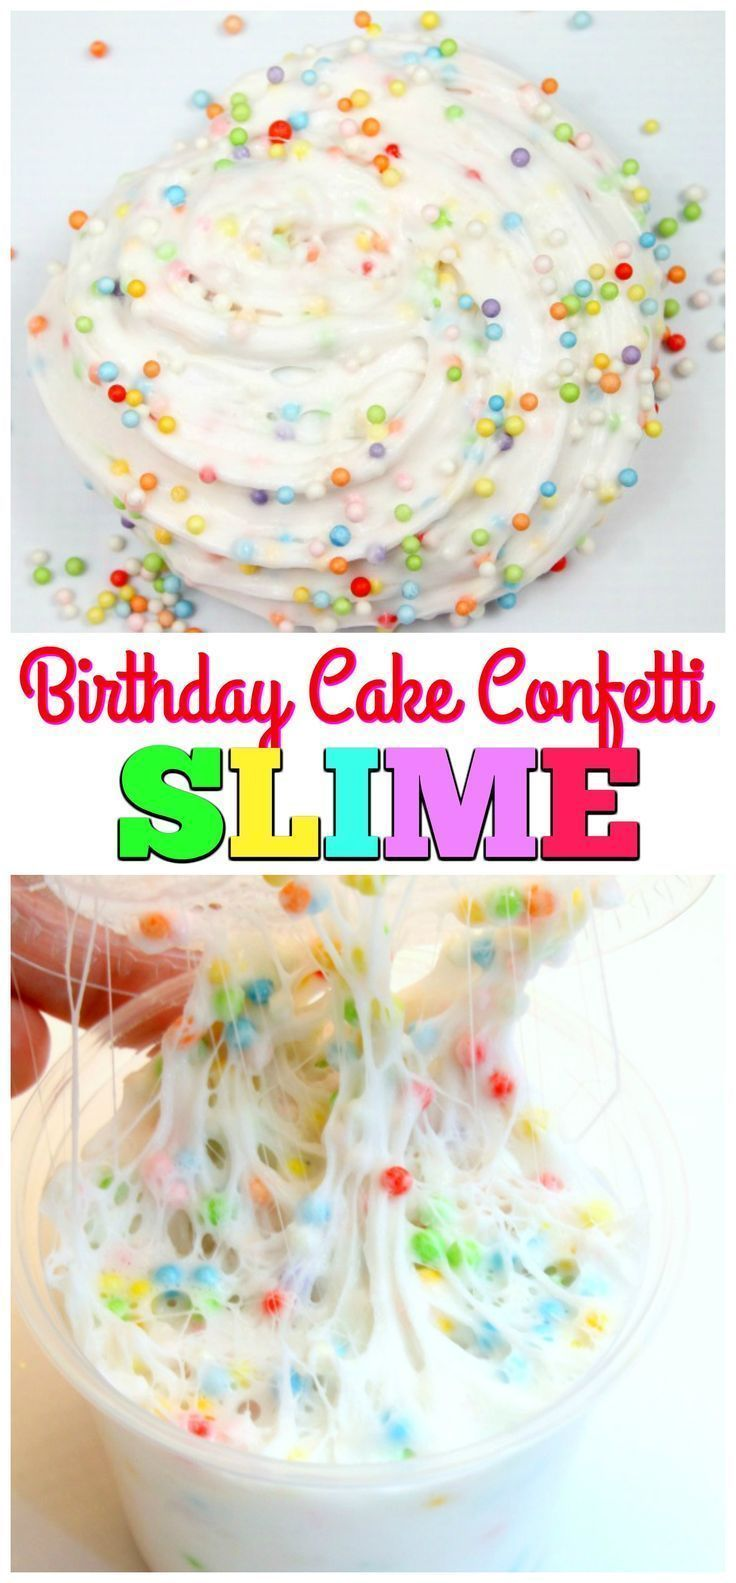 Birthday Cake Confetti Slime! It's So Fluffy